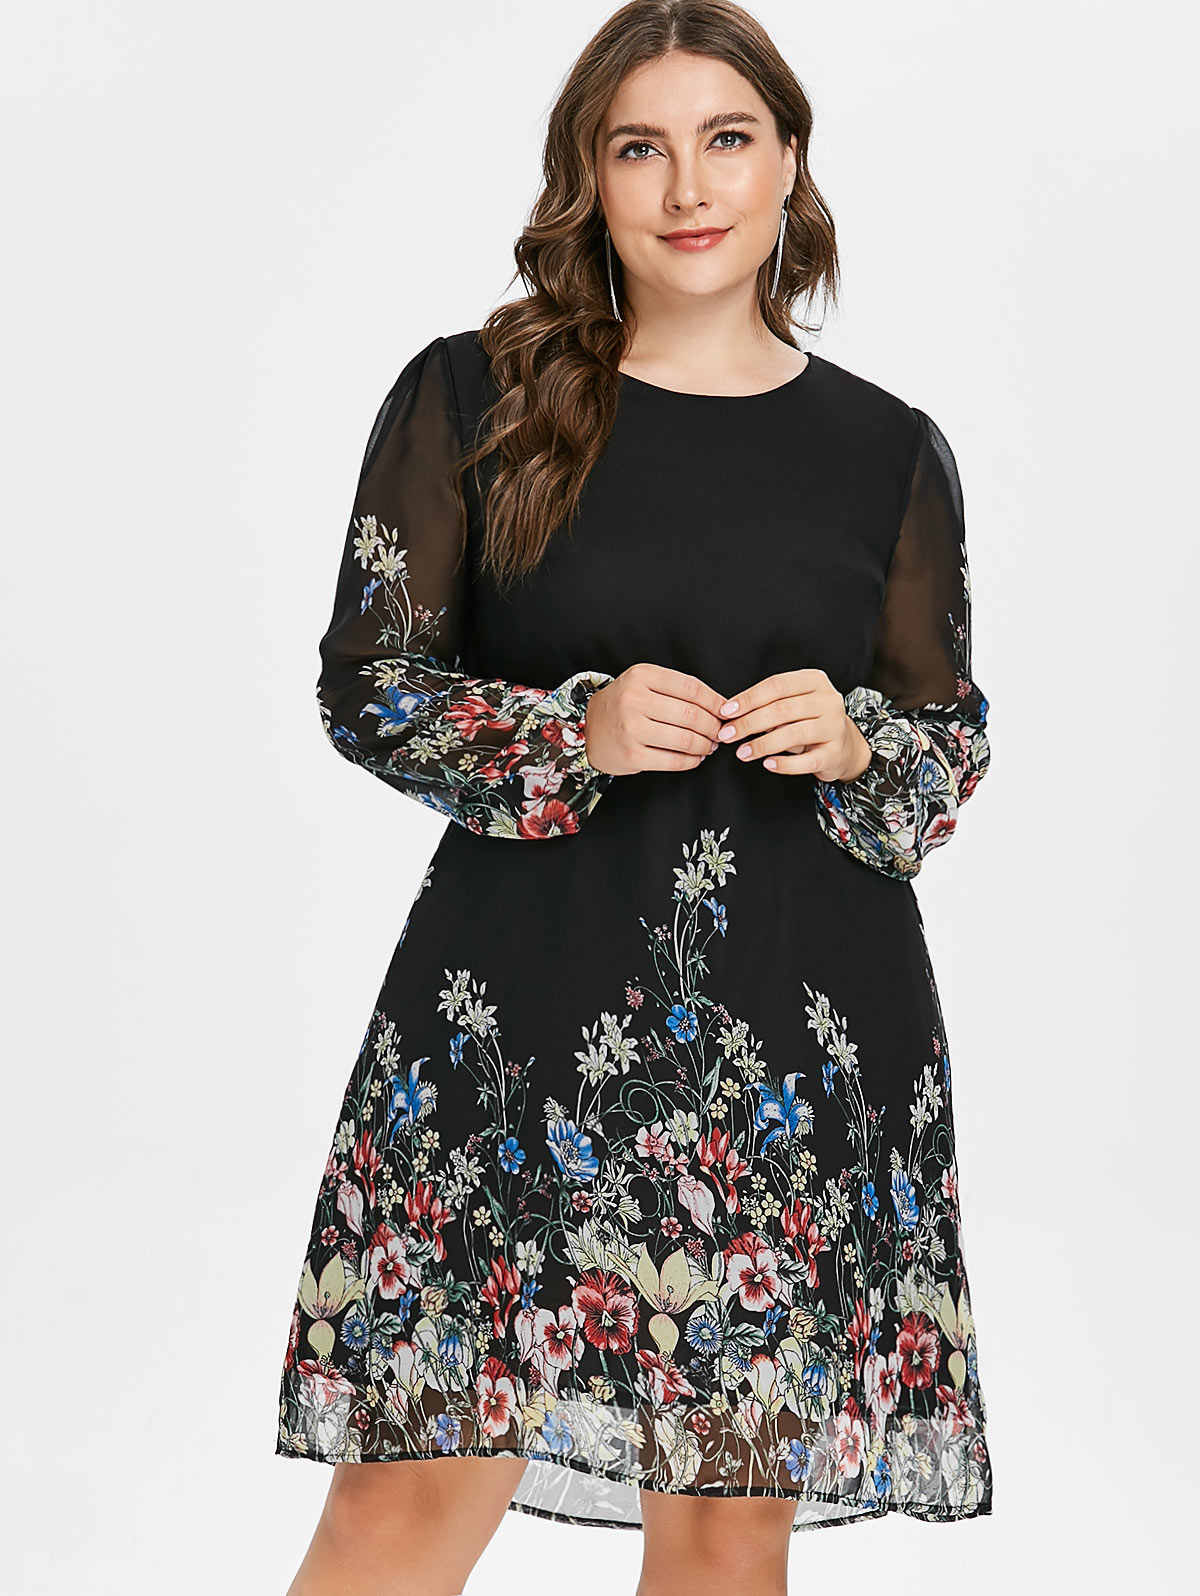 48efee4c307ac Detail Feedback Questions about Wipalo Multi Color Plus Size Floral ...